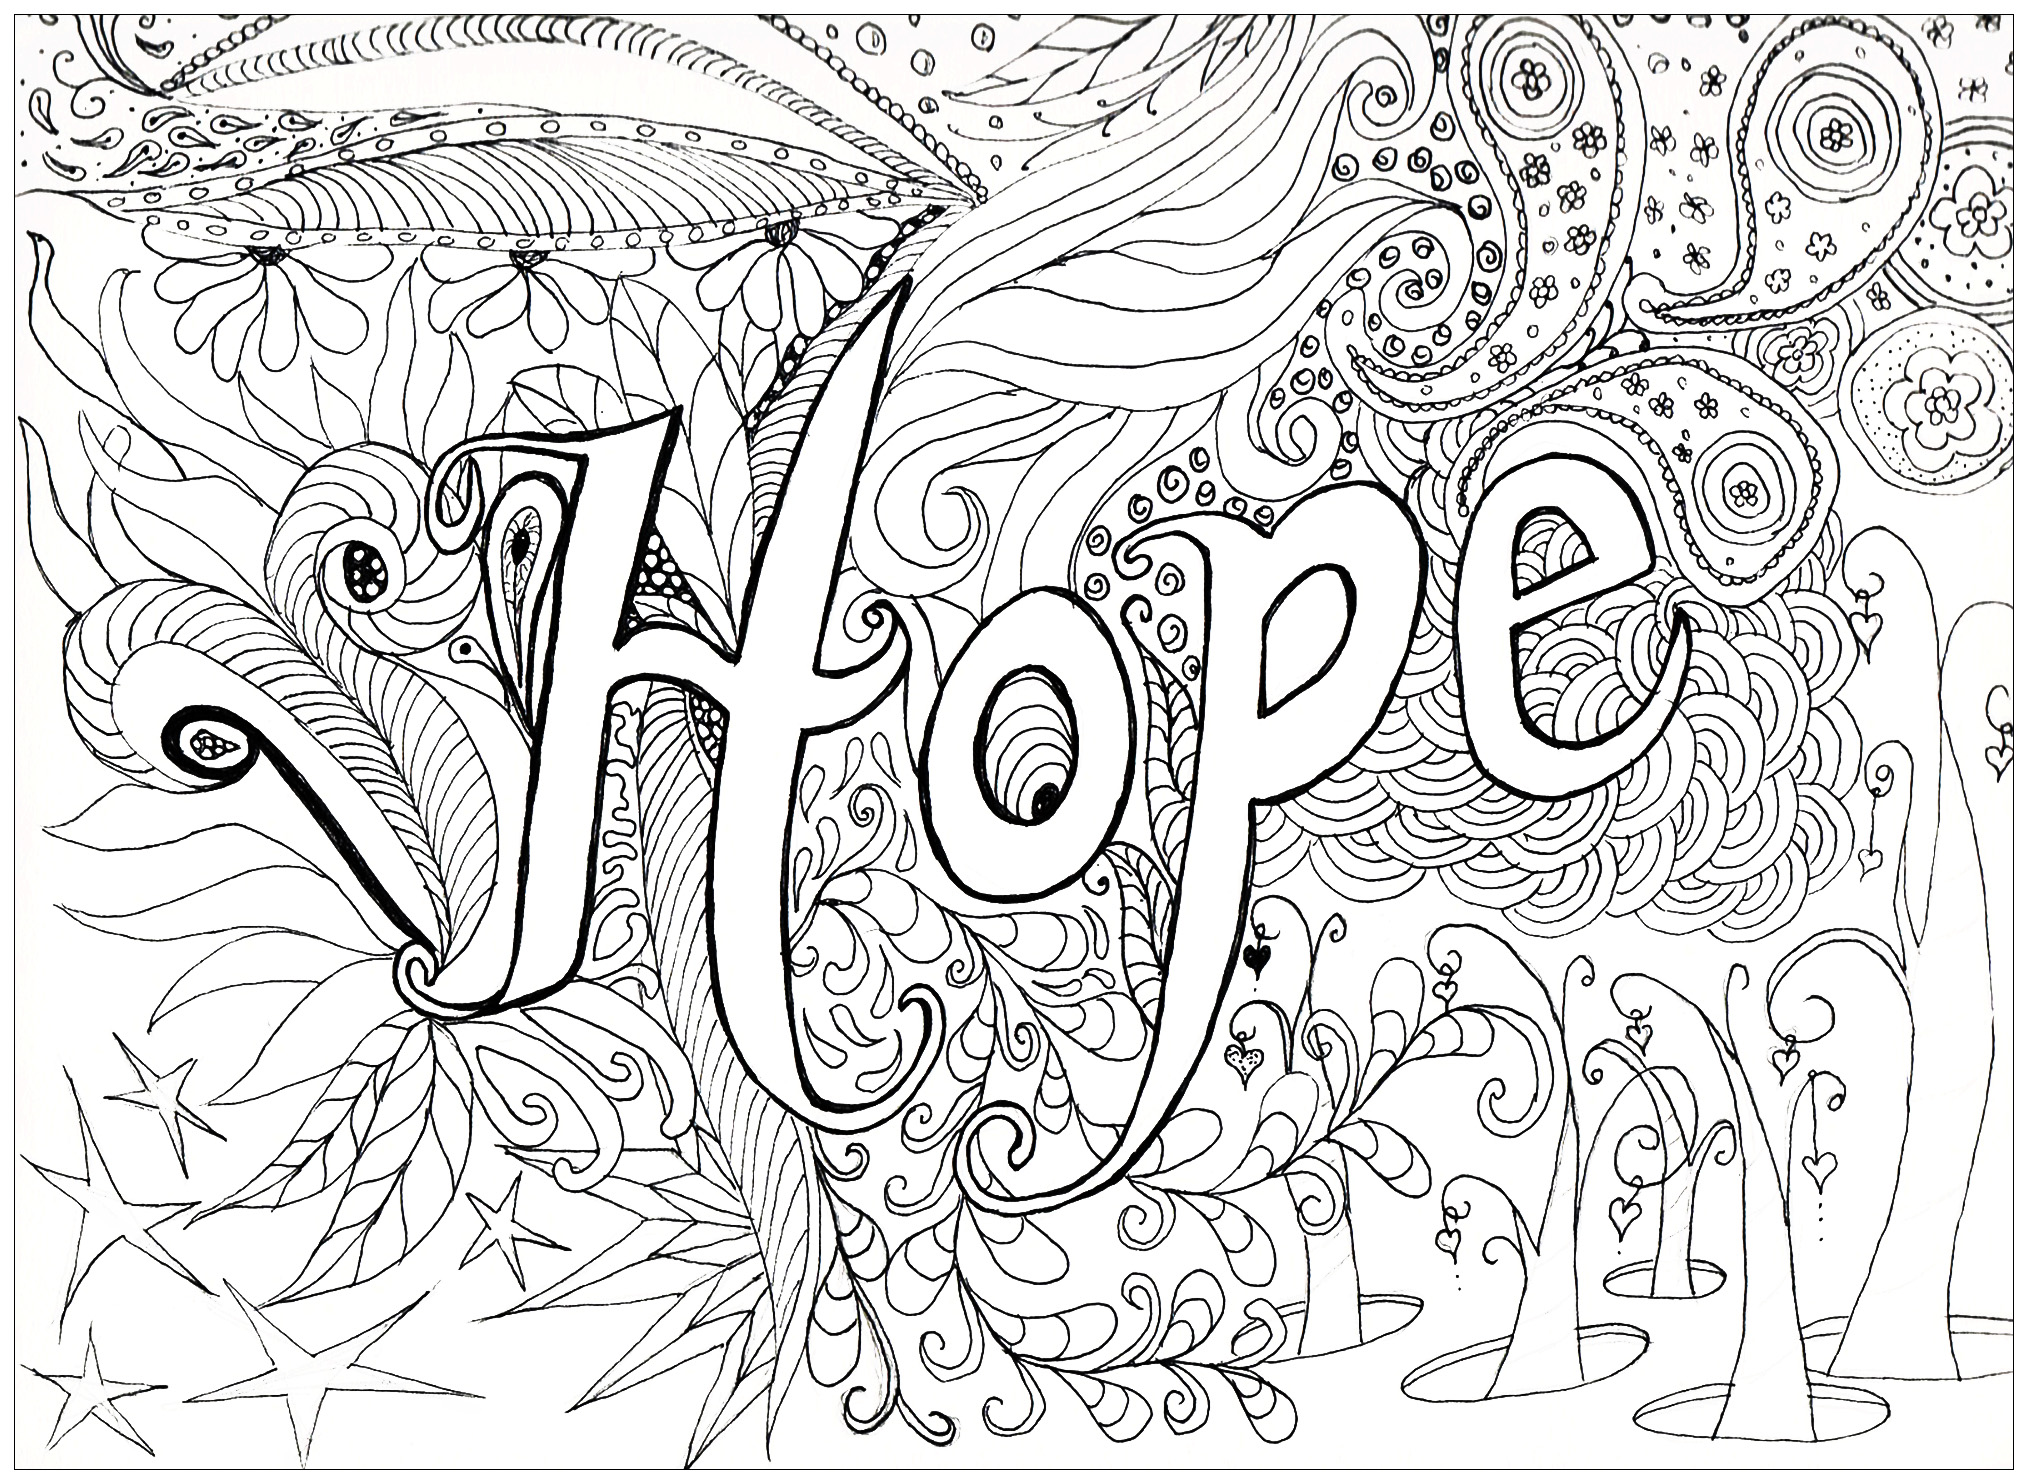 Pages hope | Zen and Anti stress - Coloring pages for adults ...